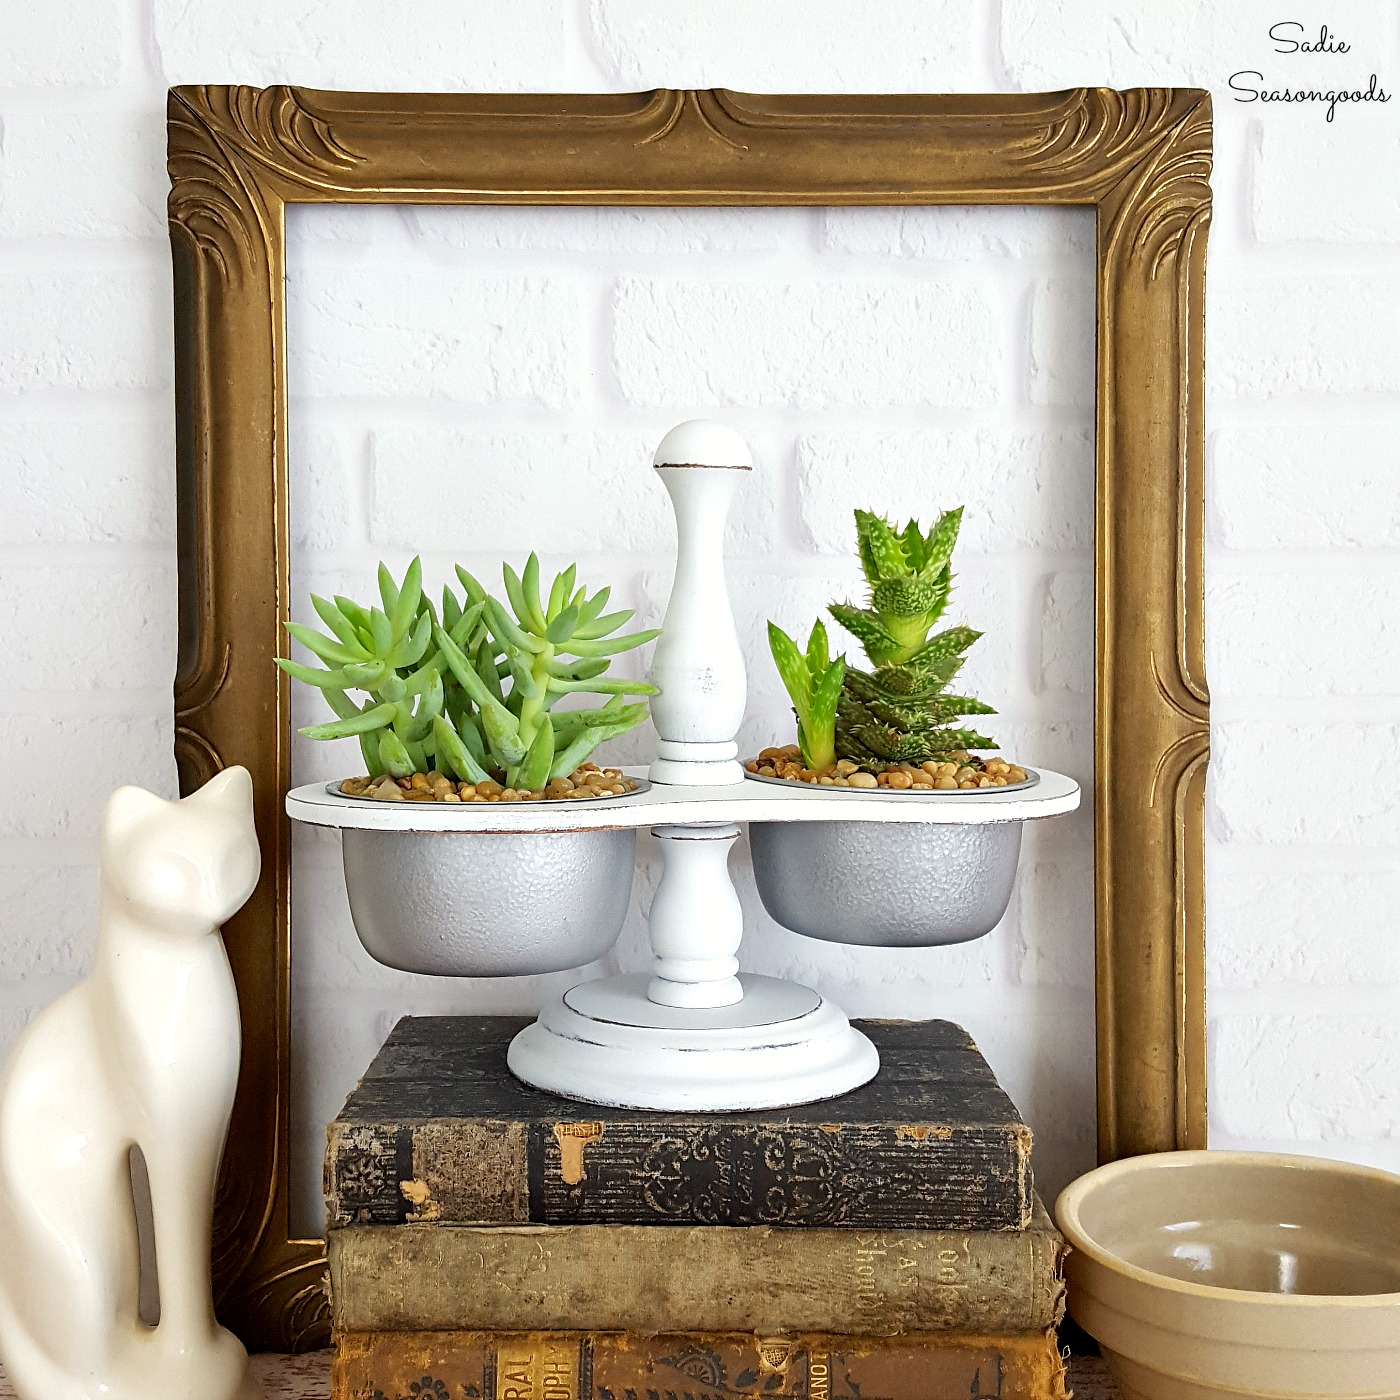 This condiment caddy had an amazing transformation into a duo planter